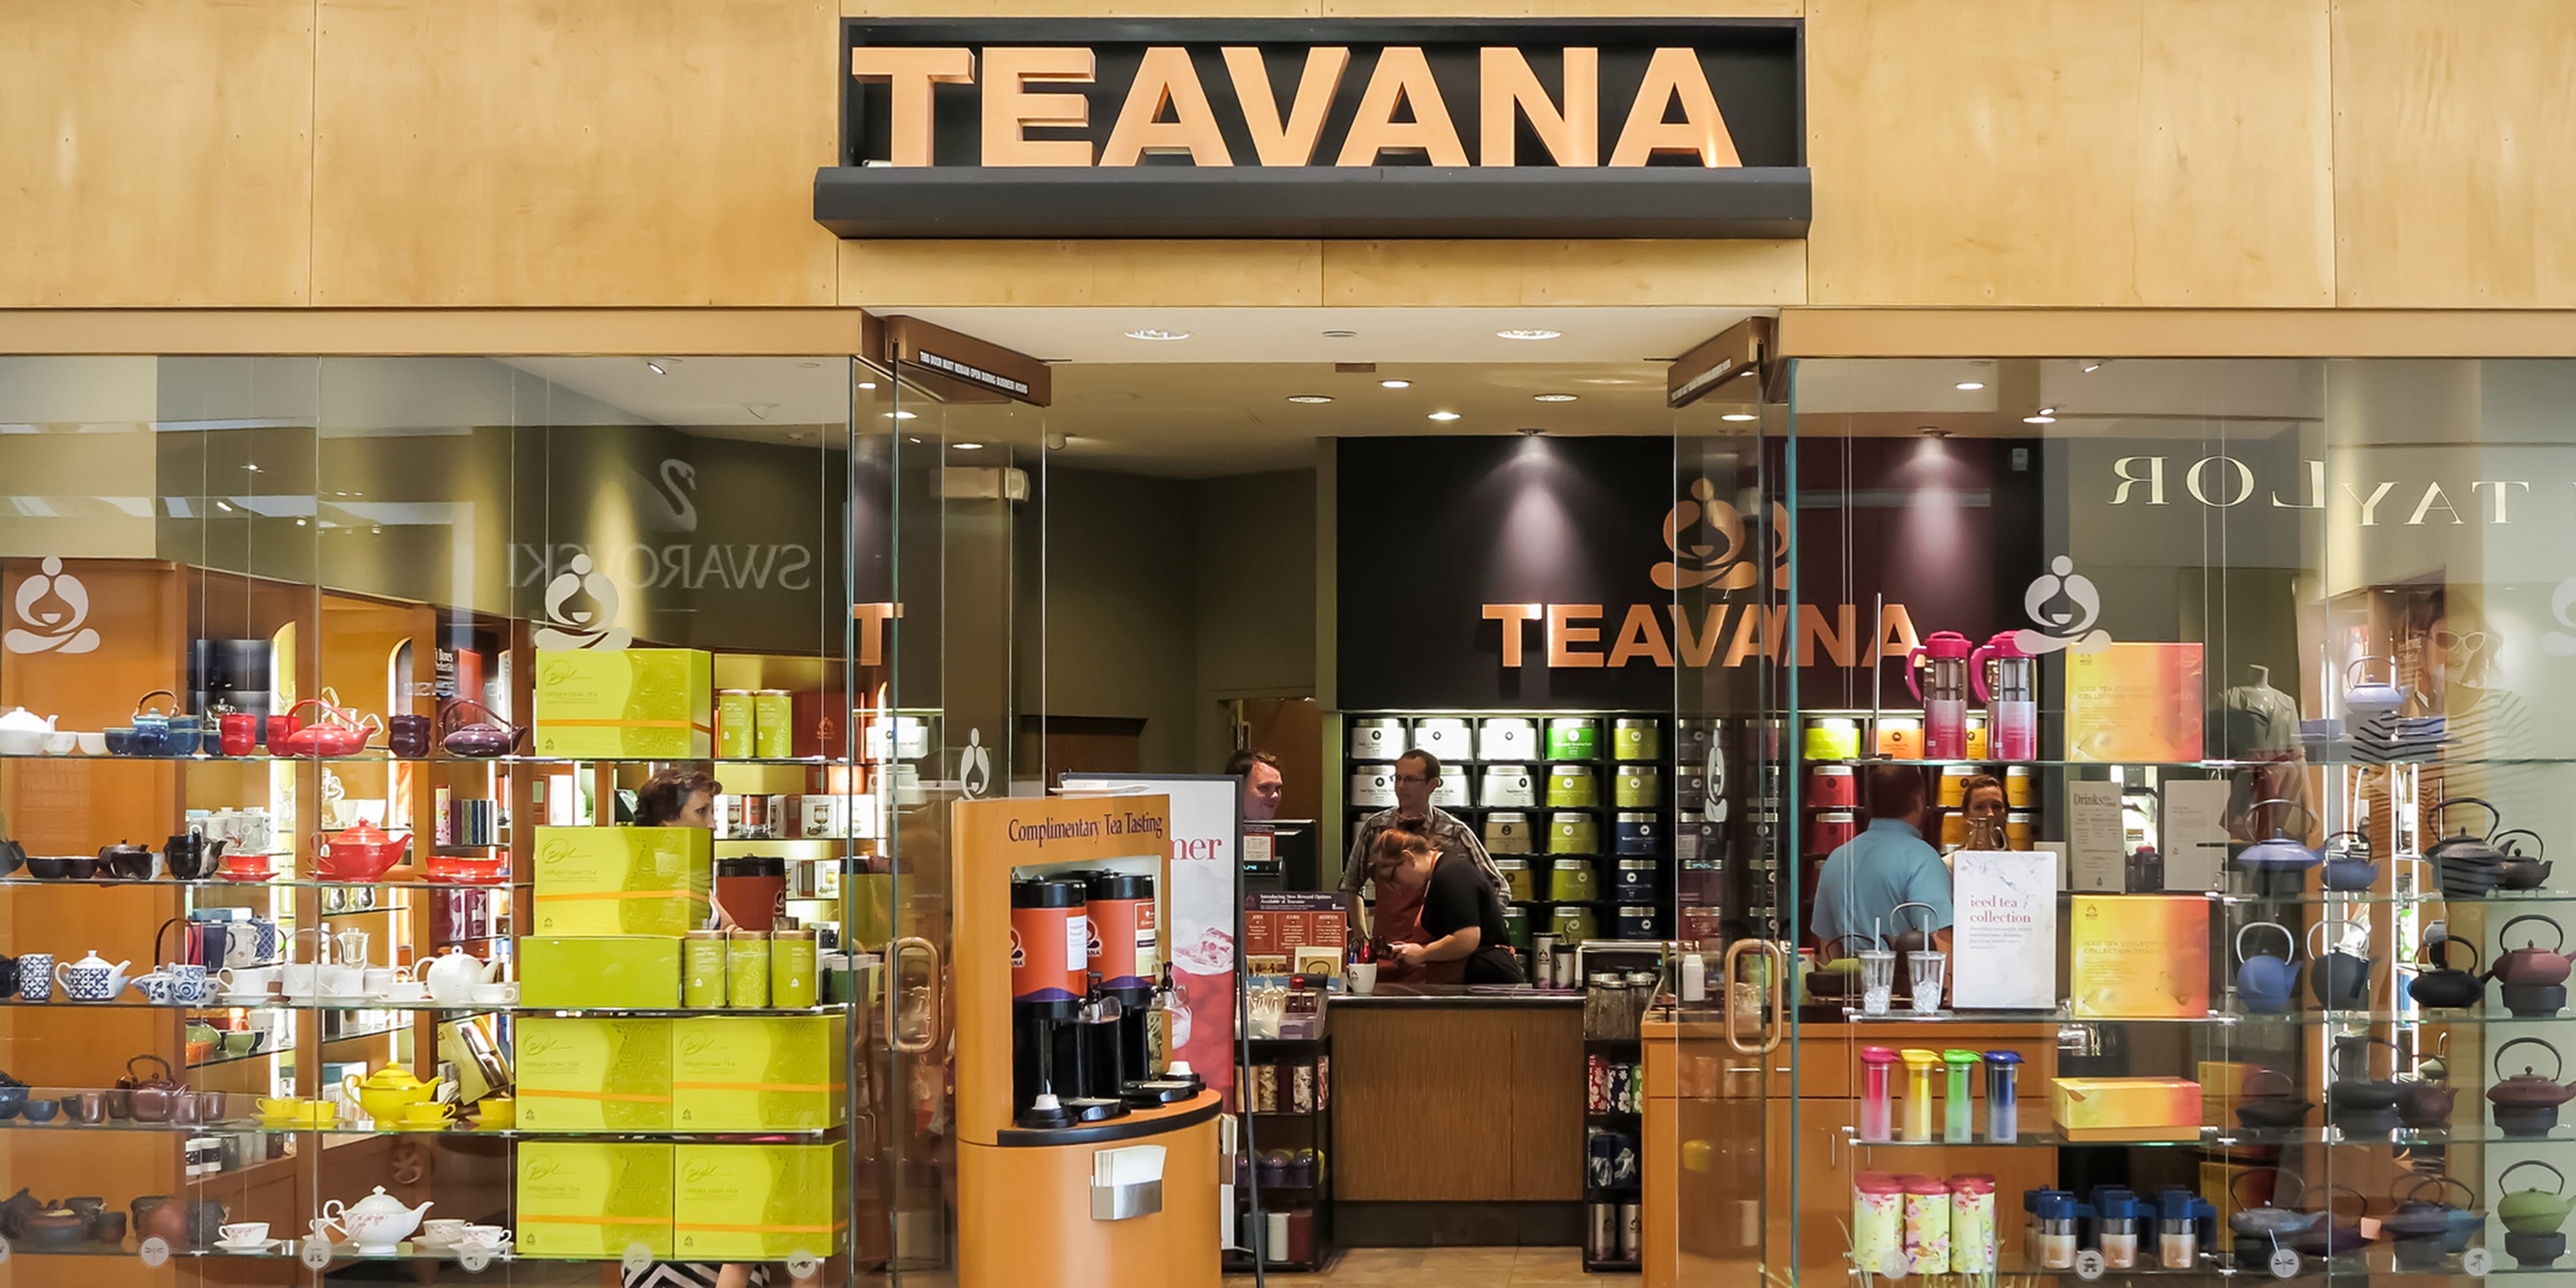 Teavana store. Stock photo